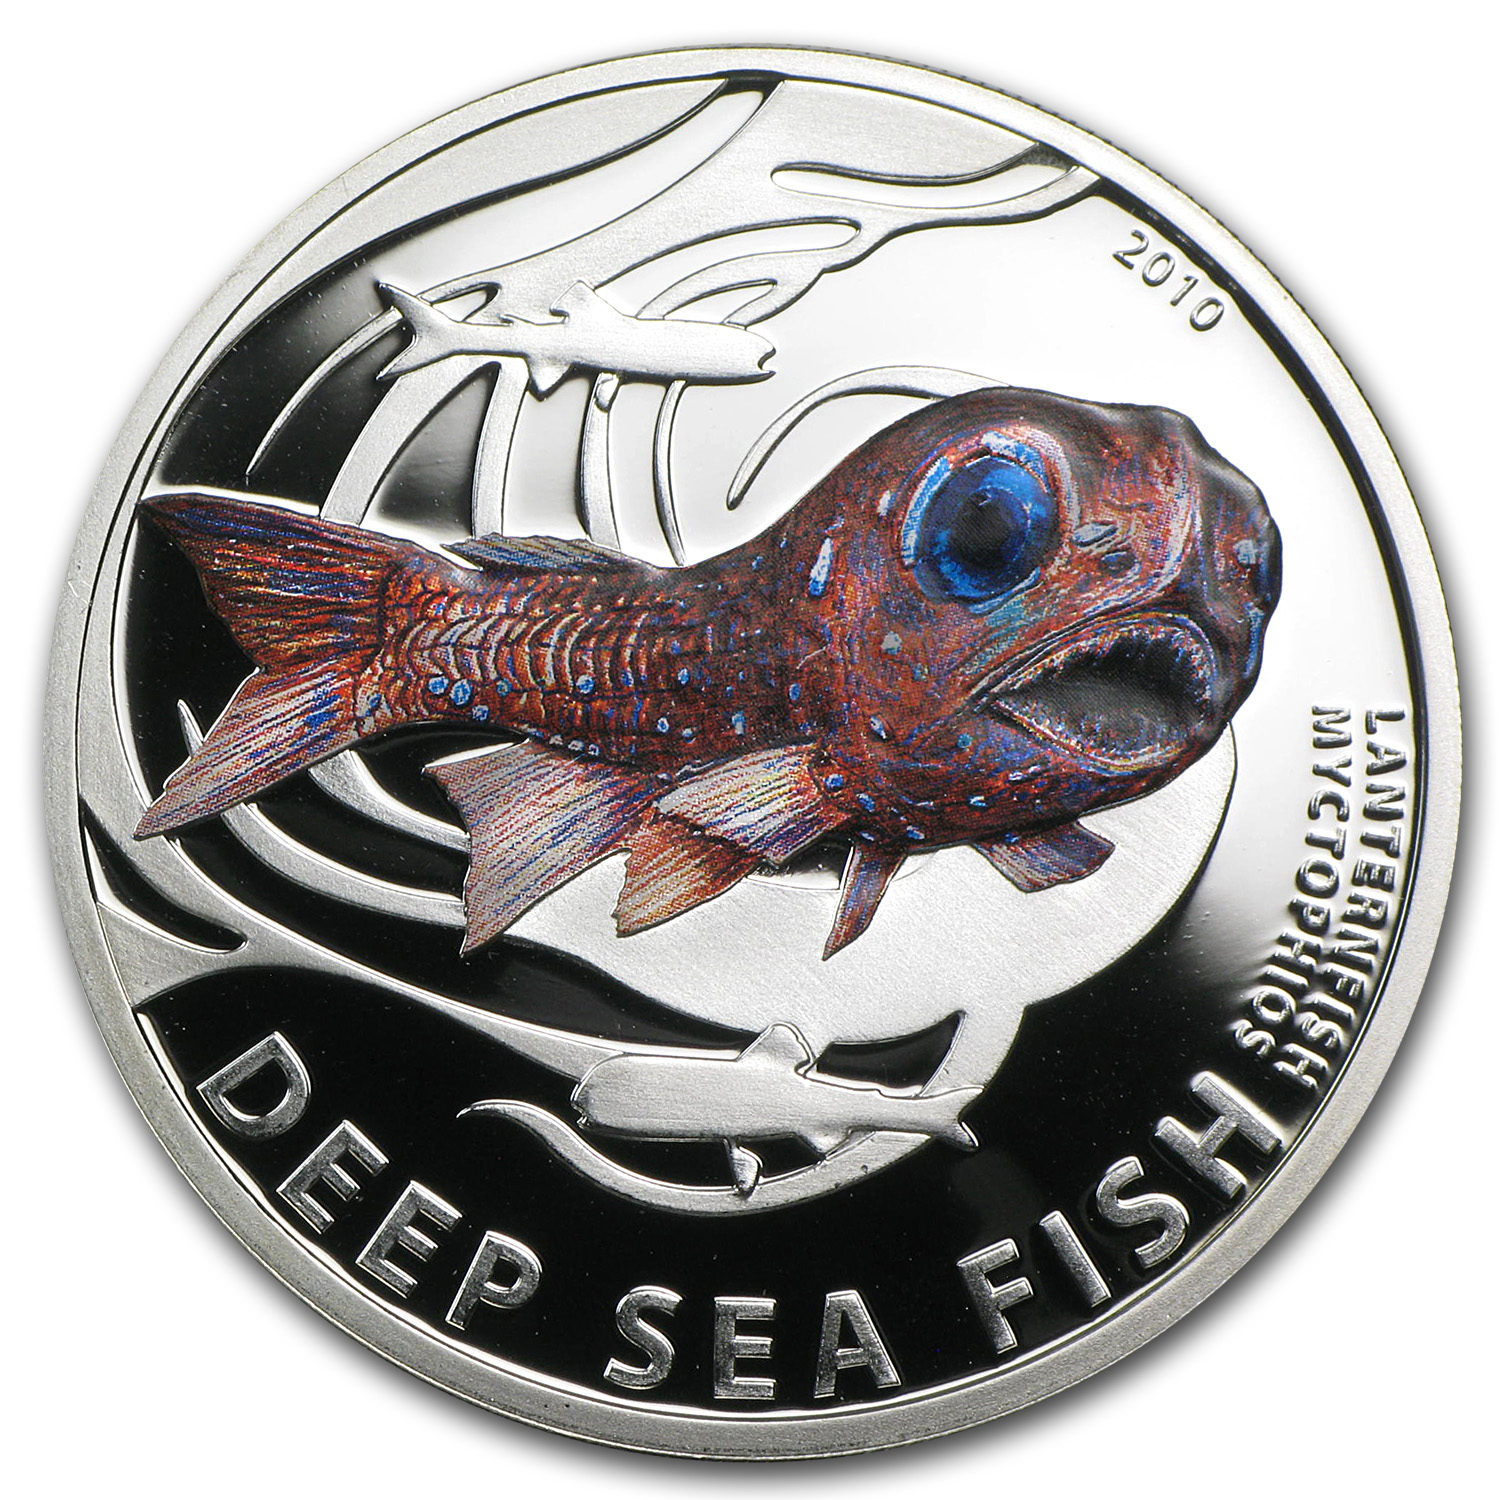 Pitcairn Islands 2010 Silver Proof Deep Sea Fish - Lanternfish